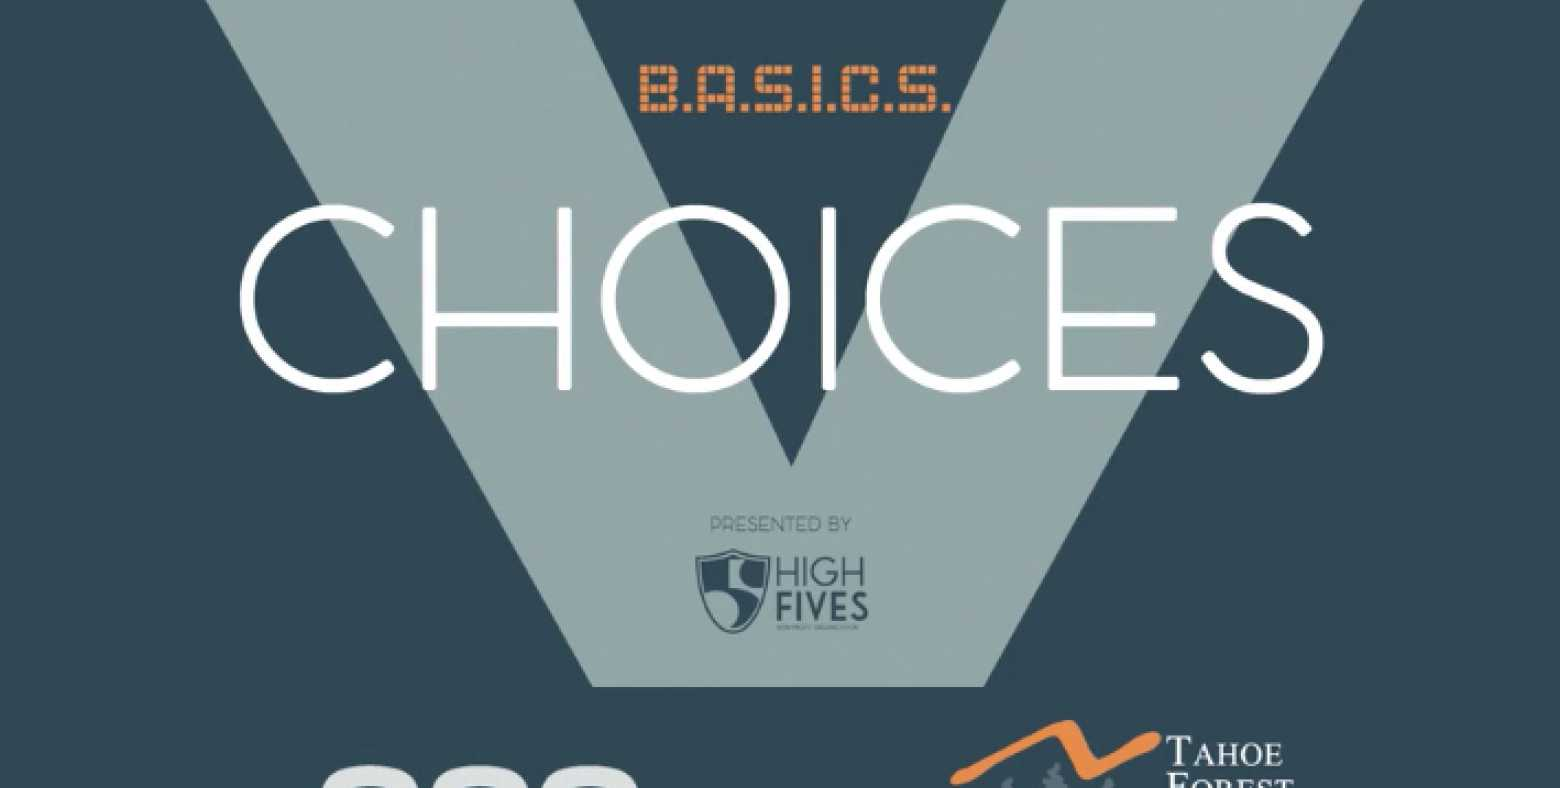 Choices video title frame with High Fives logo